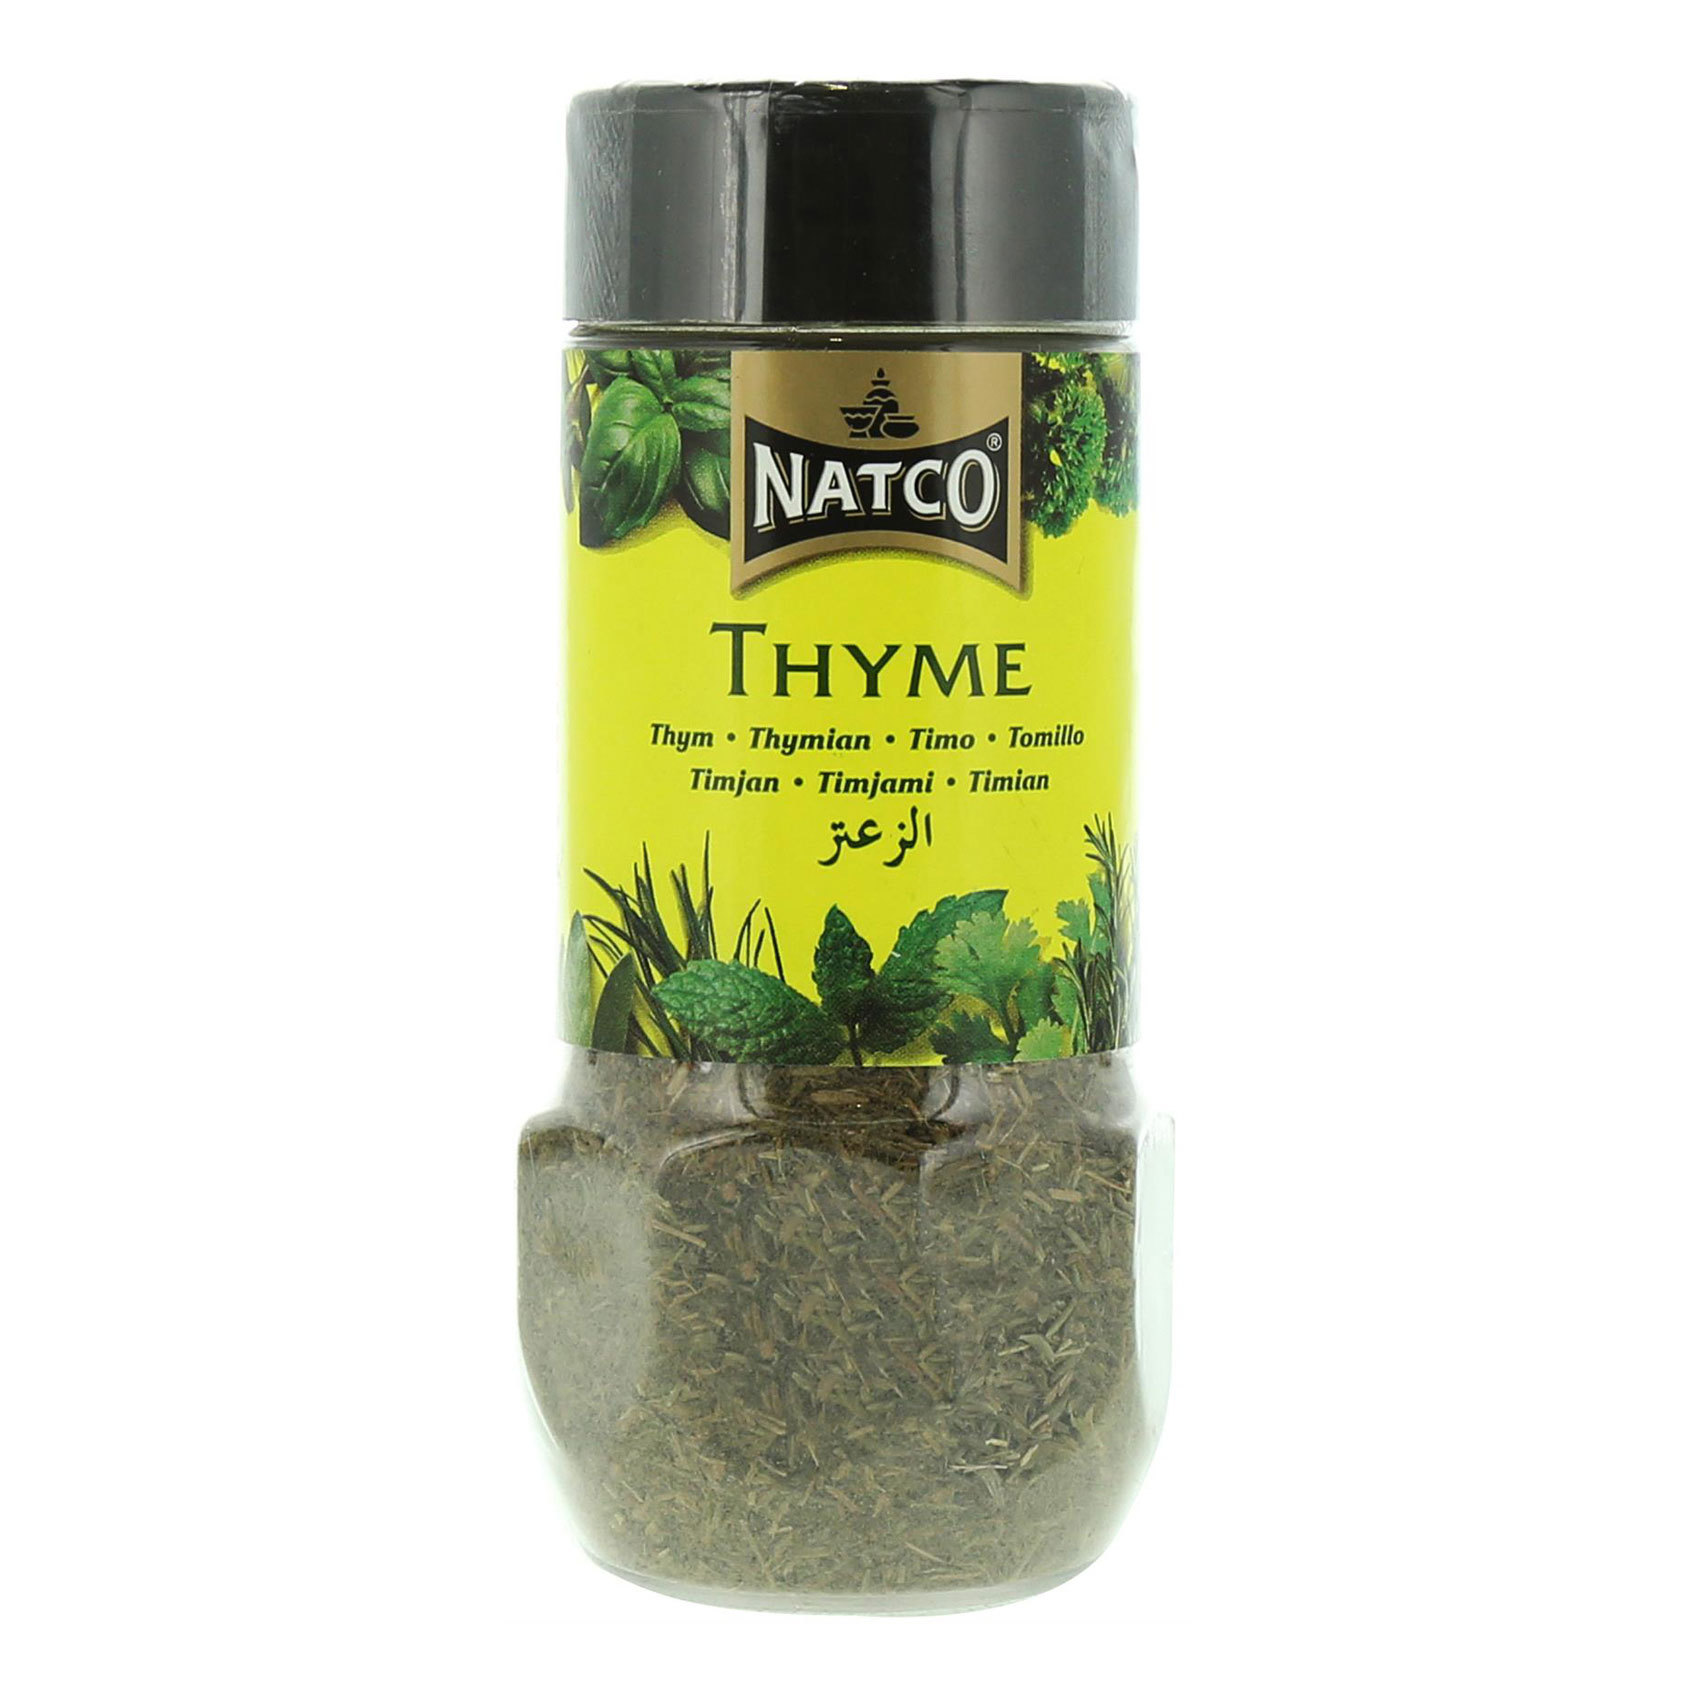 NATCO THYME 25GR